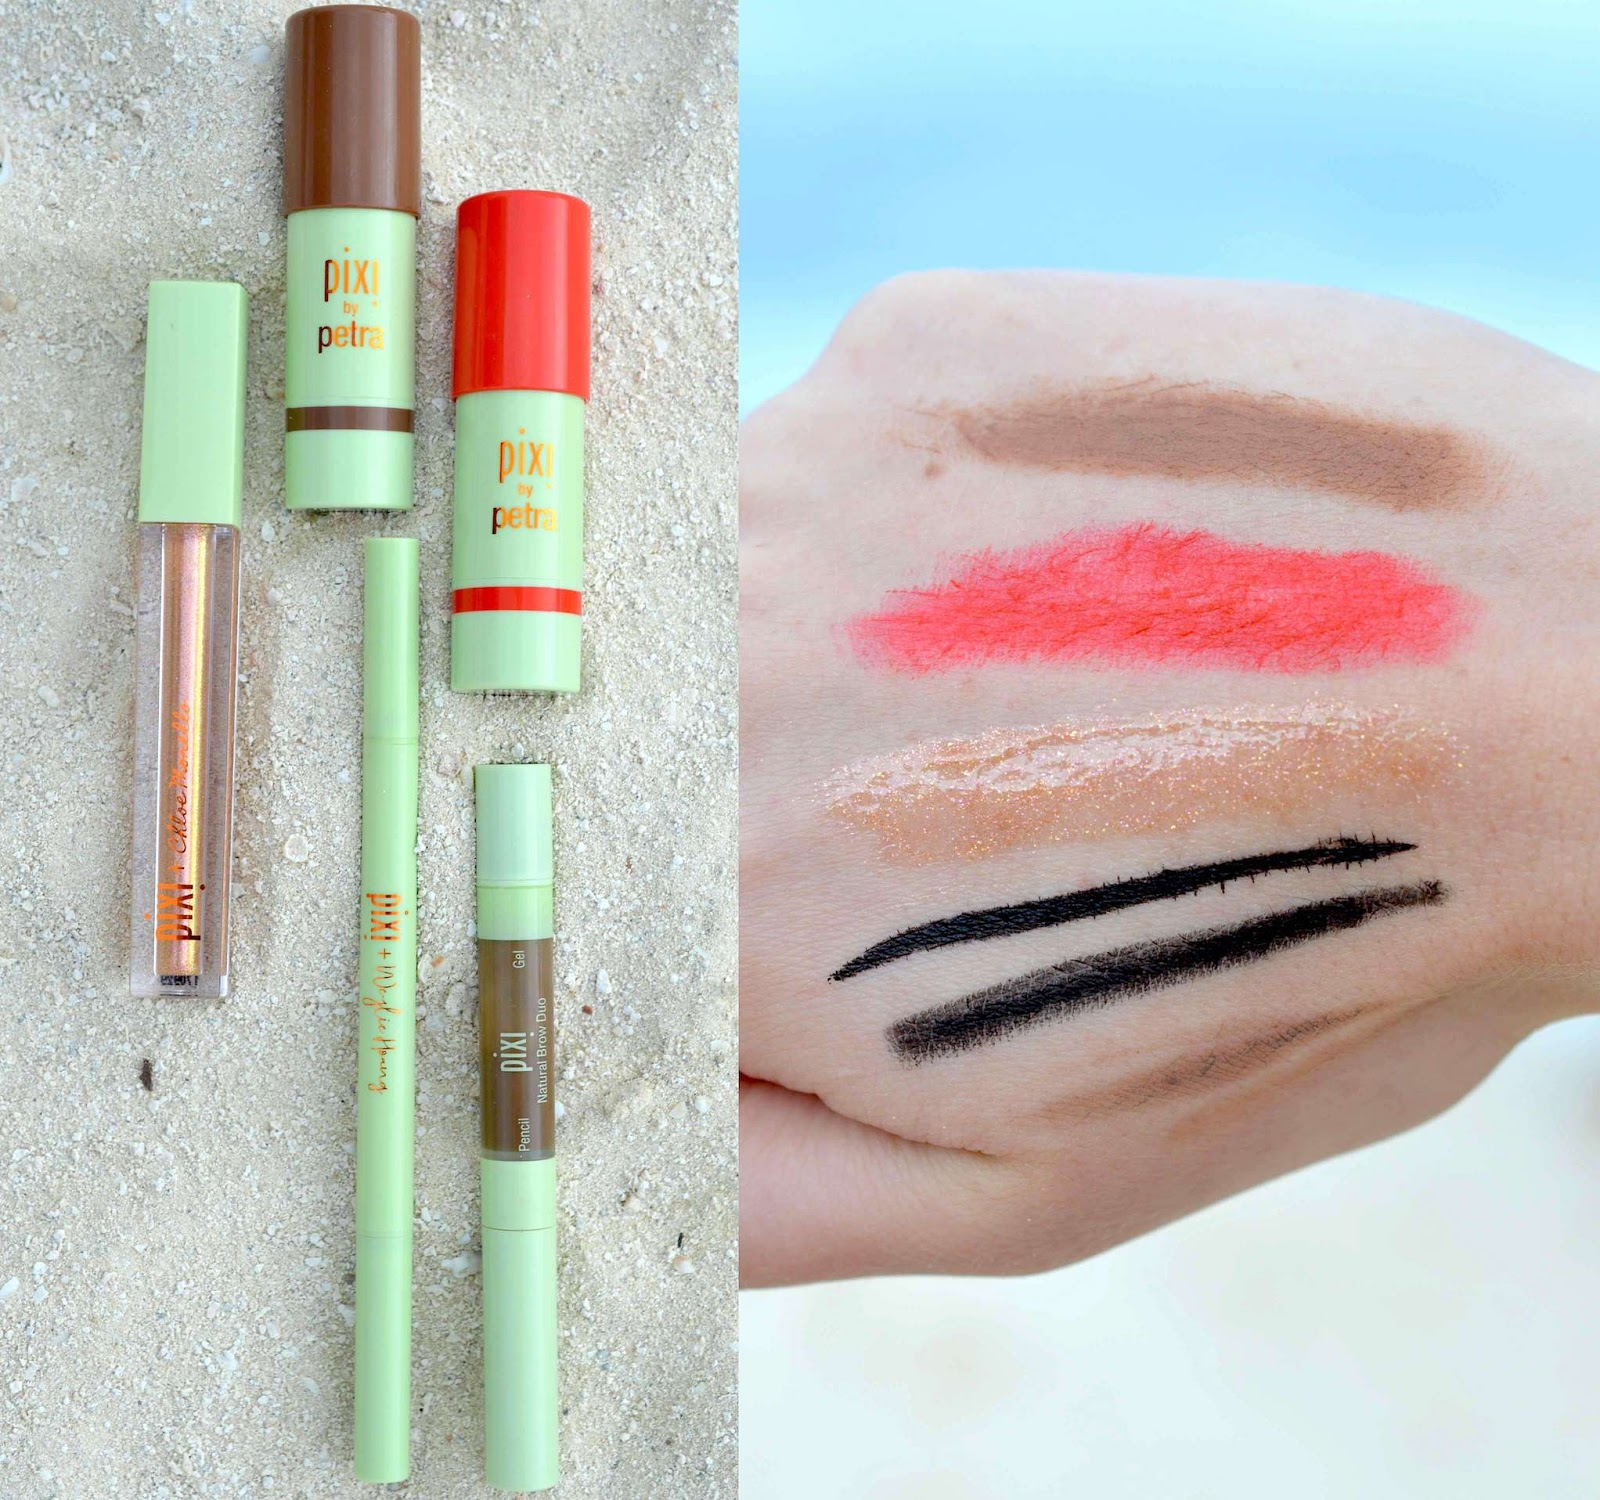 Pixi Makeup Review